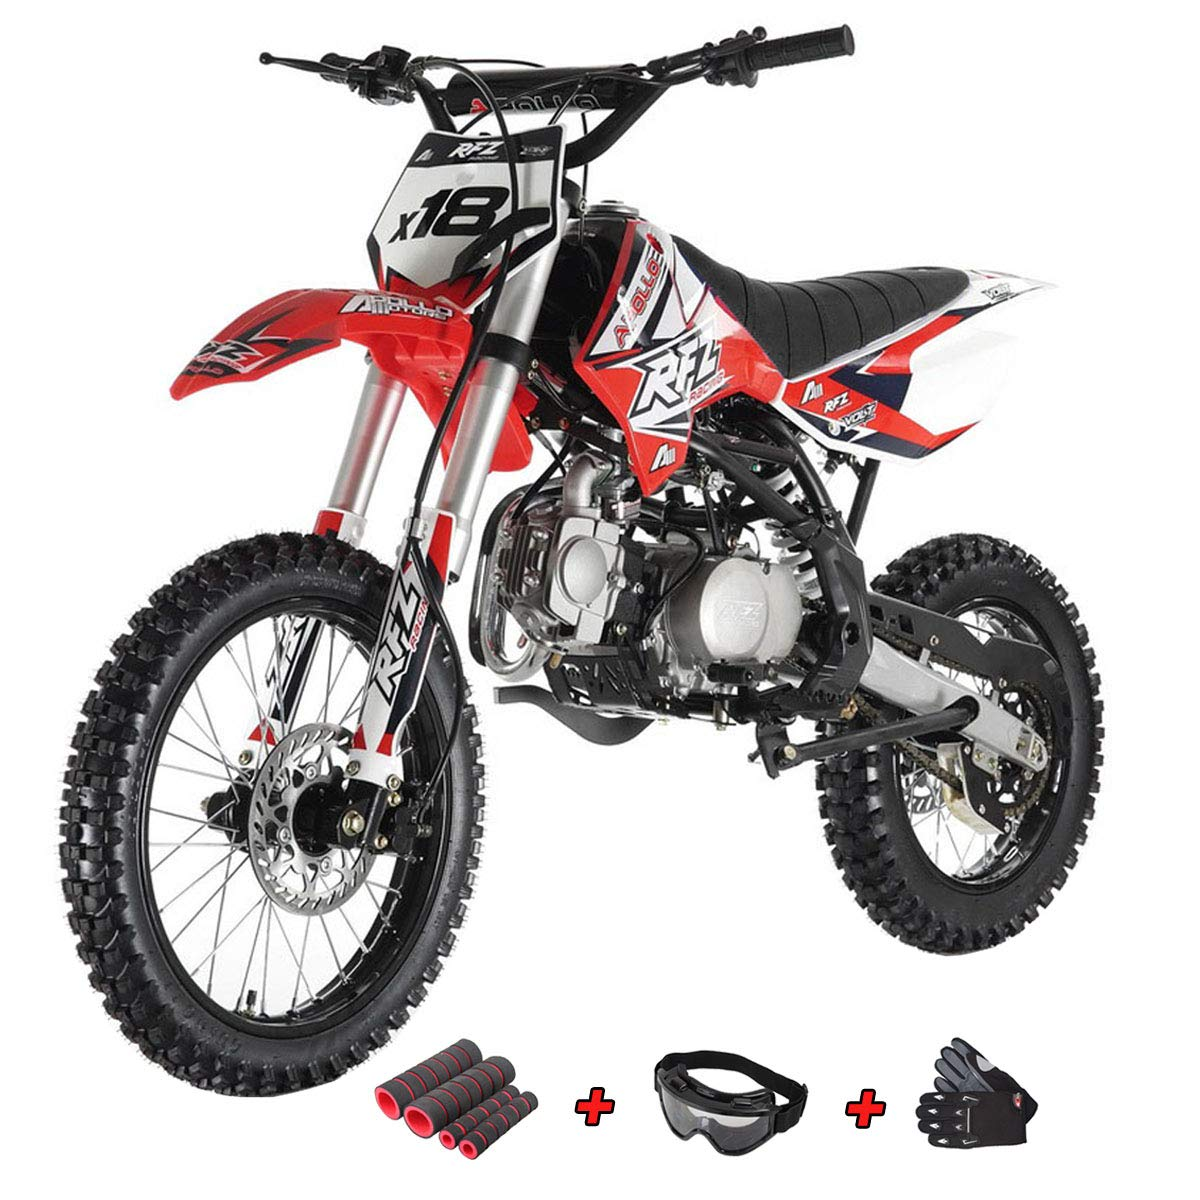 125cc Adults Dirt Bike with 4-Speed Manual Transmission, Double Spare Frame! Kick Start, Big 17''/14'' Tires! Not Legal in California (Blue)